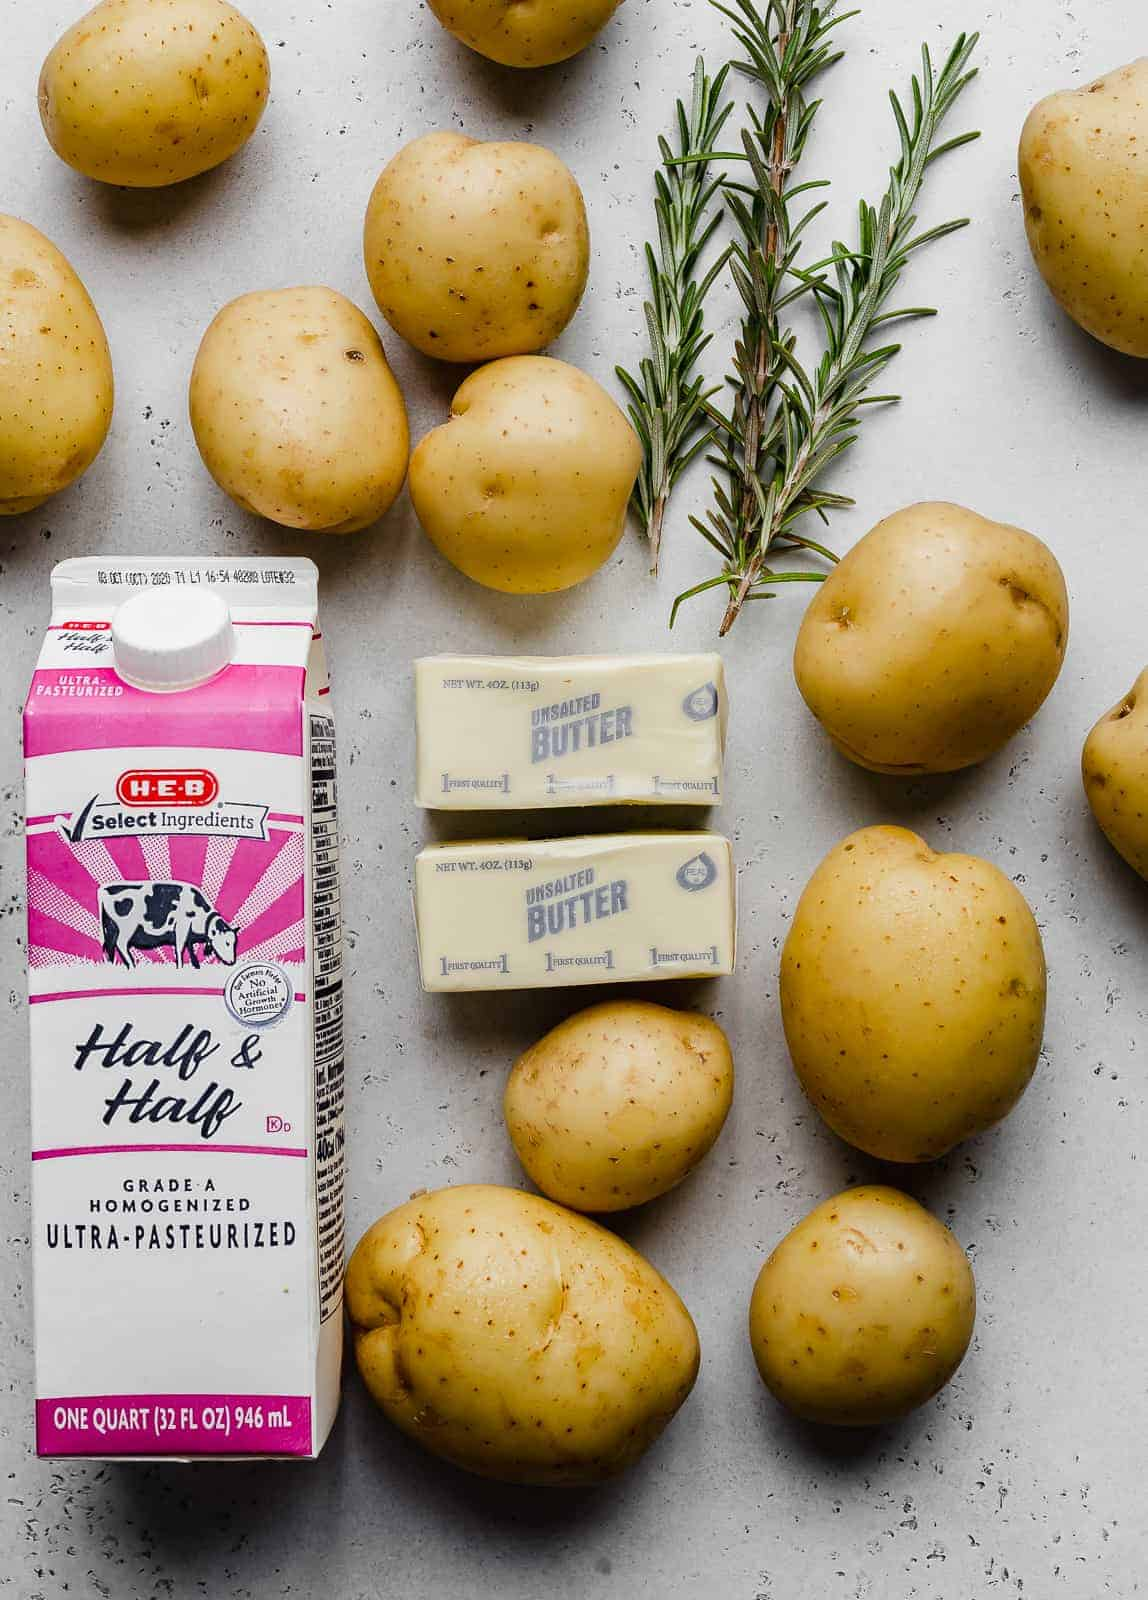 Ingredients used to make mashed potatoes: potatoes, half and half, butter, and rosemary against a grey background.